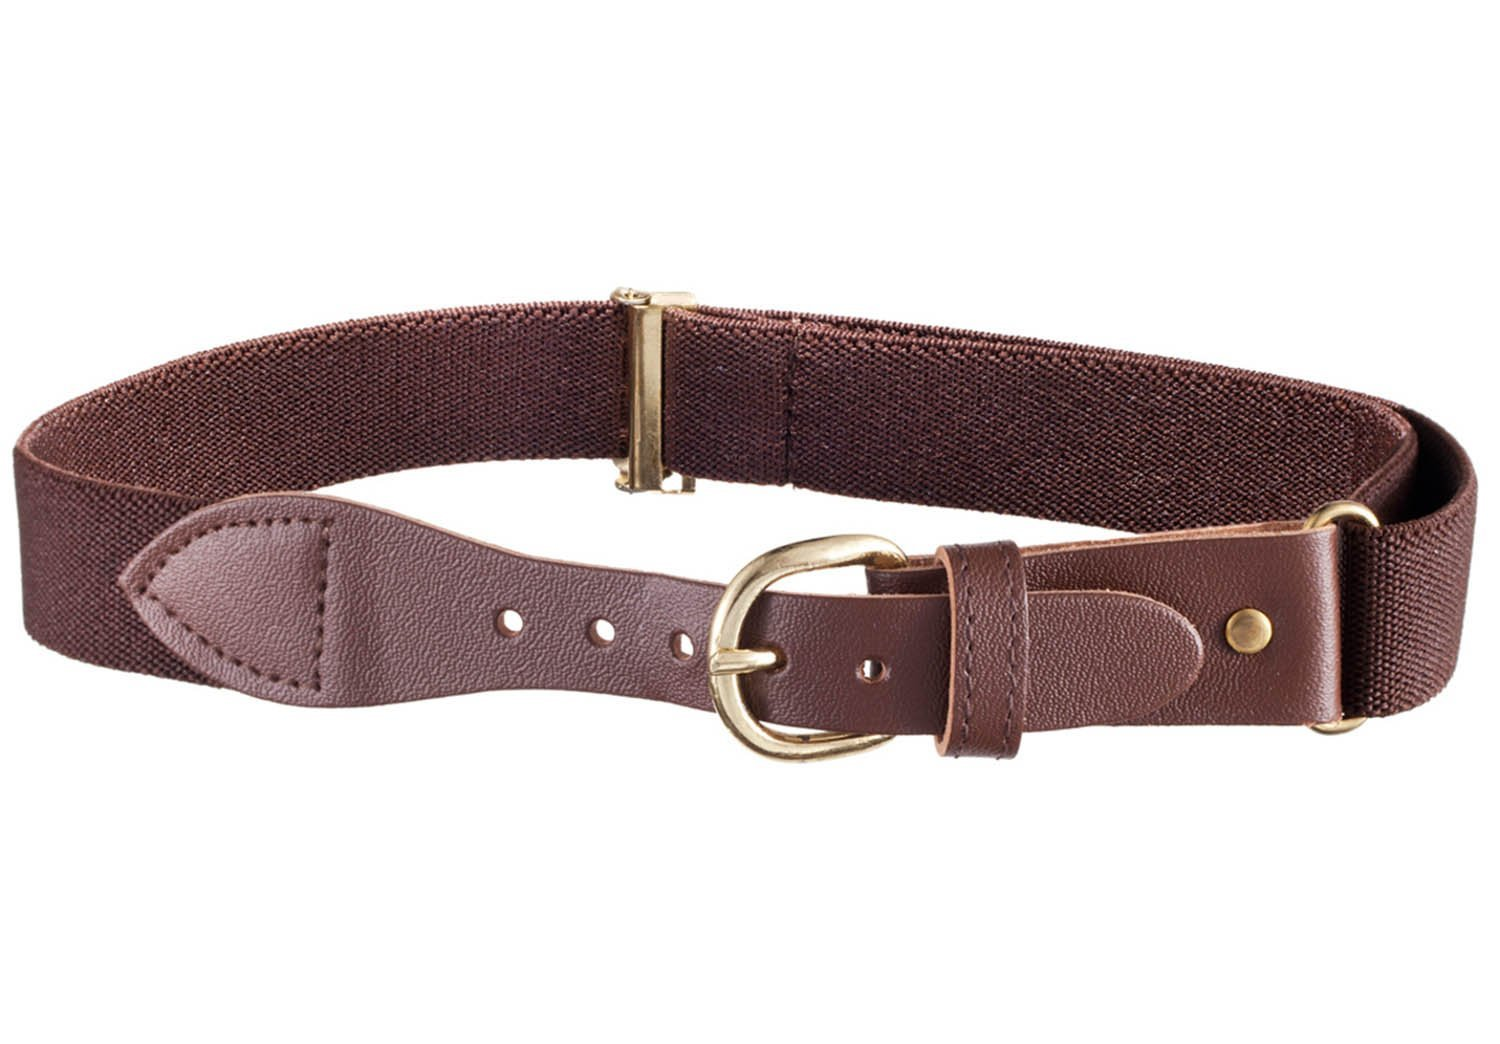 Kids Elastic Adjustable Belt with Leather Closure - Brown